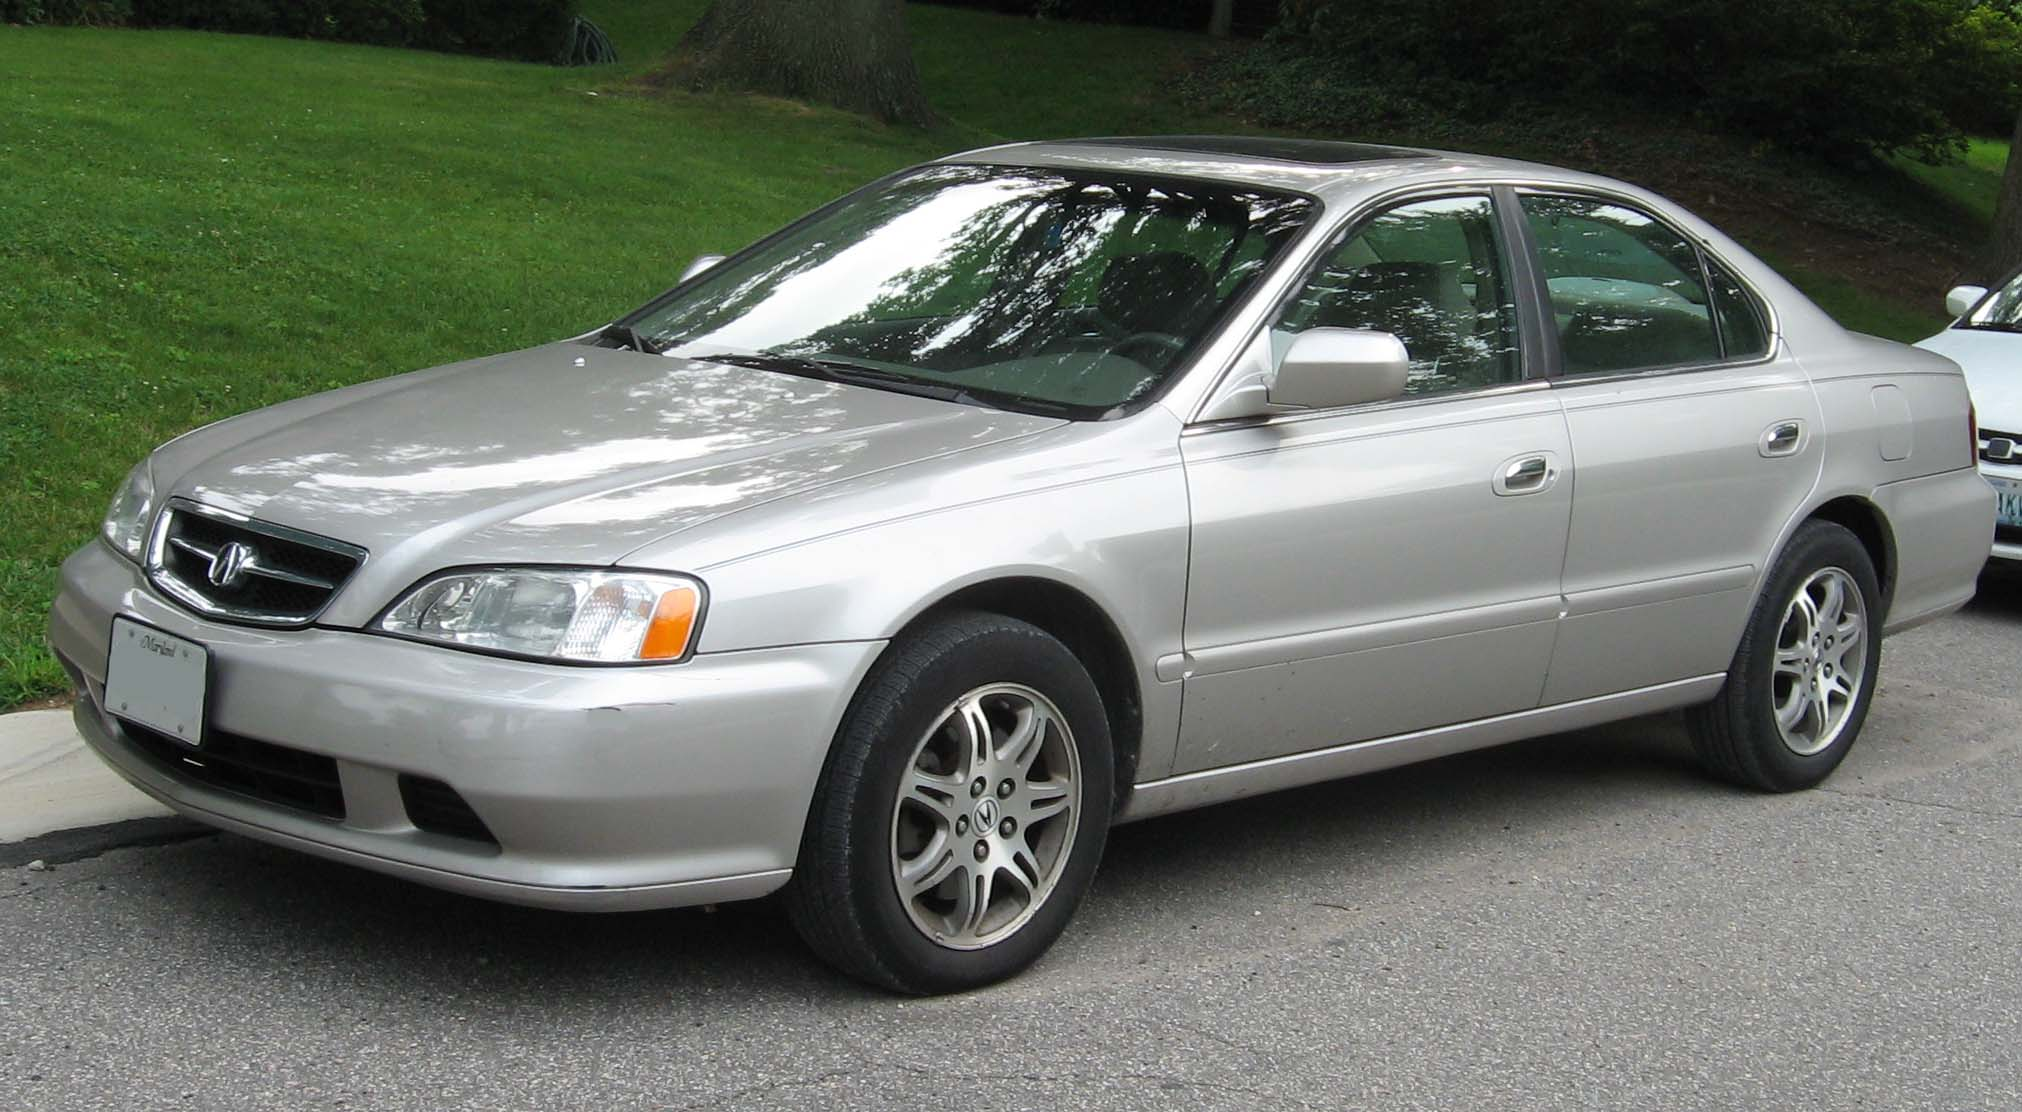 File:1999-01 Acura TL.jpg - Wikimedia Commons